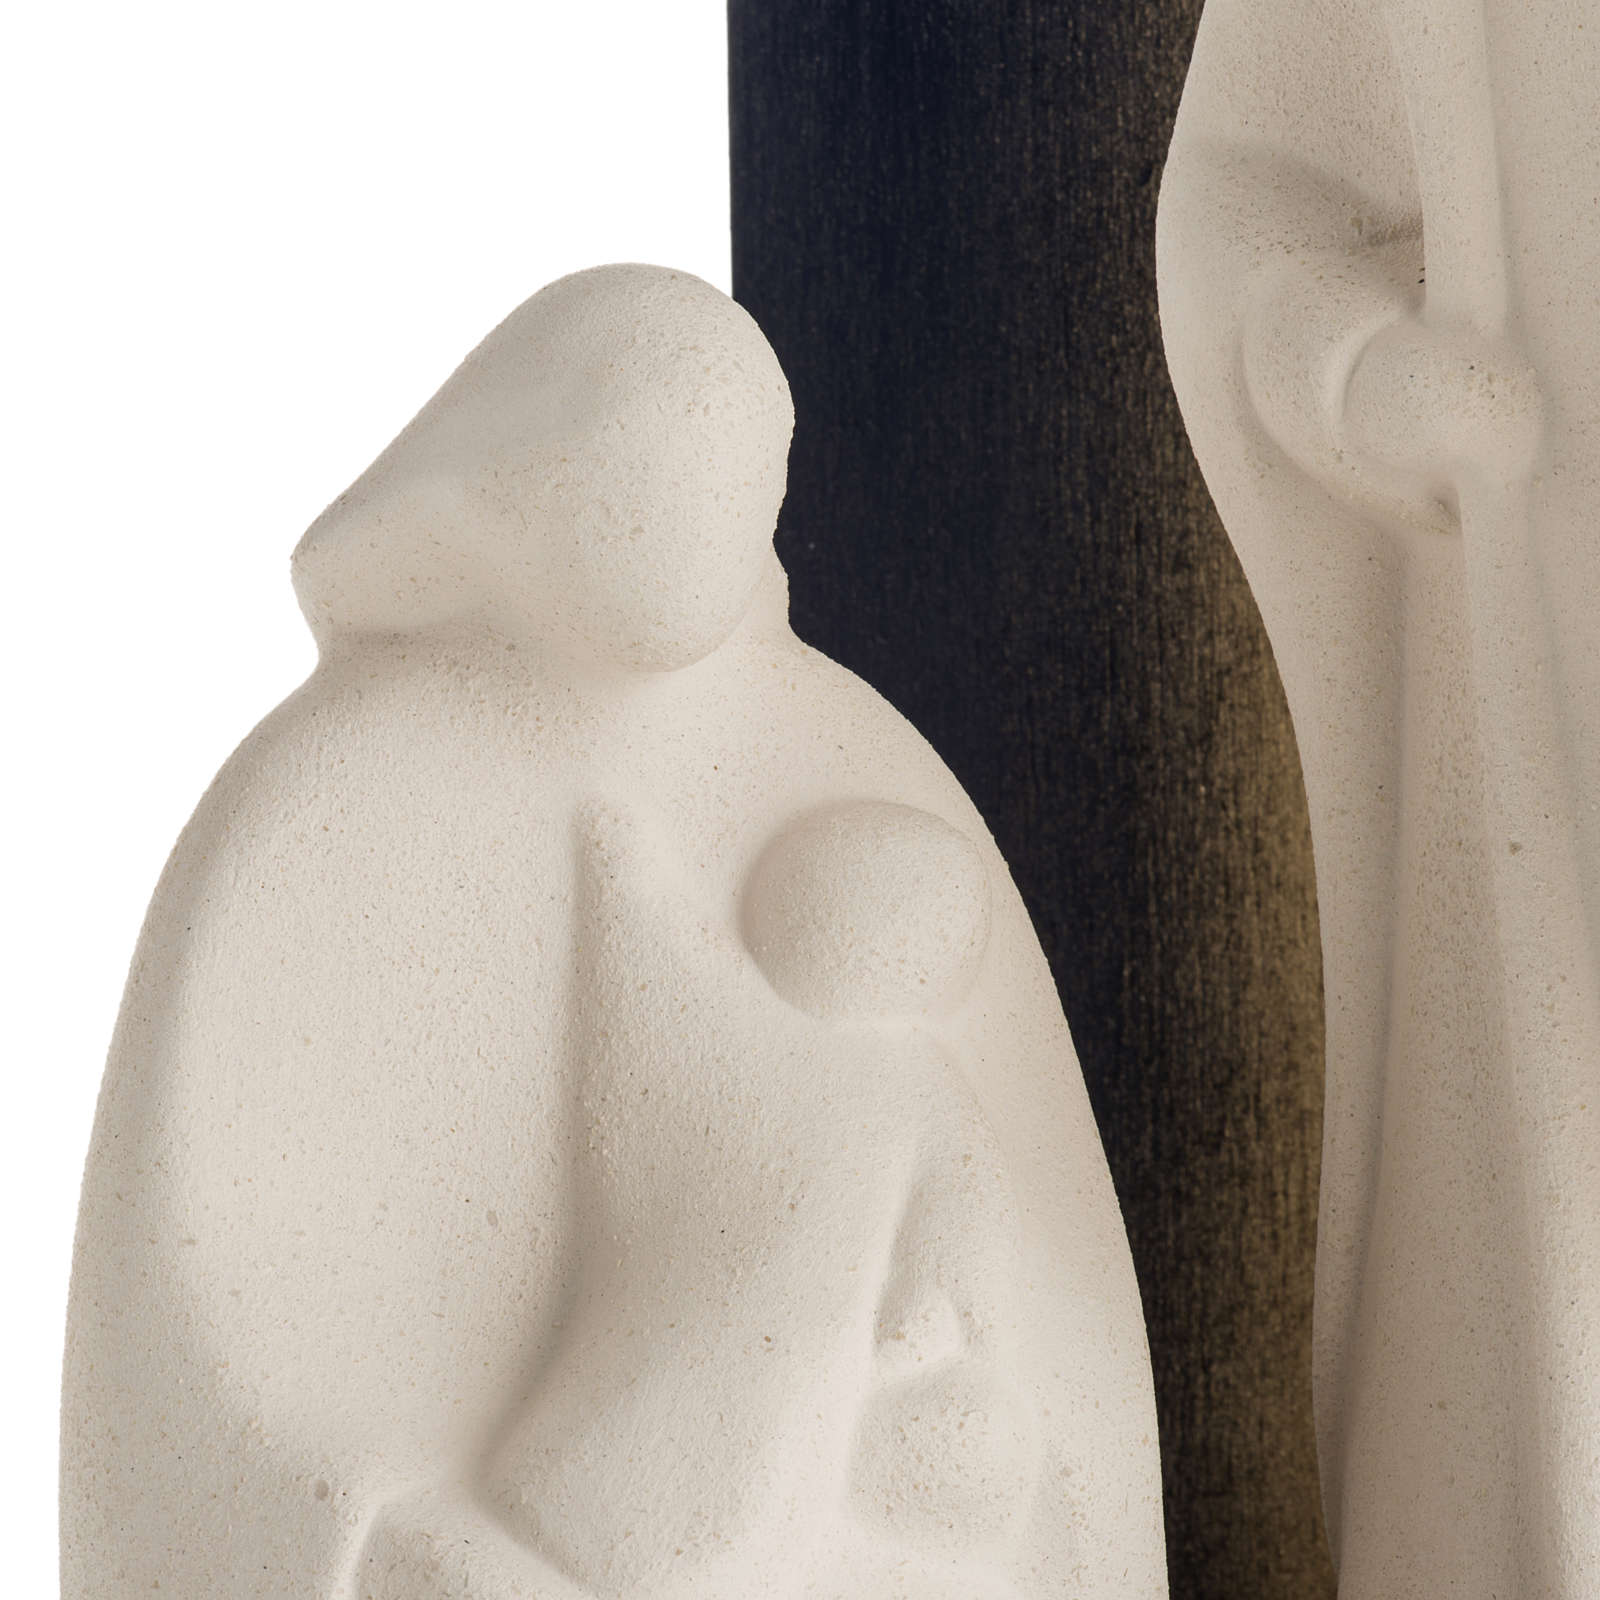 Nativity scene Noel model in white clay and gold natural wood,28 4